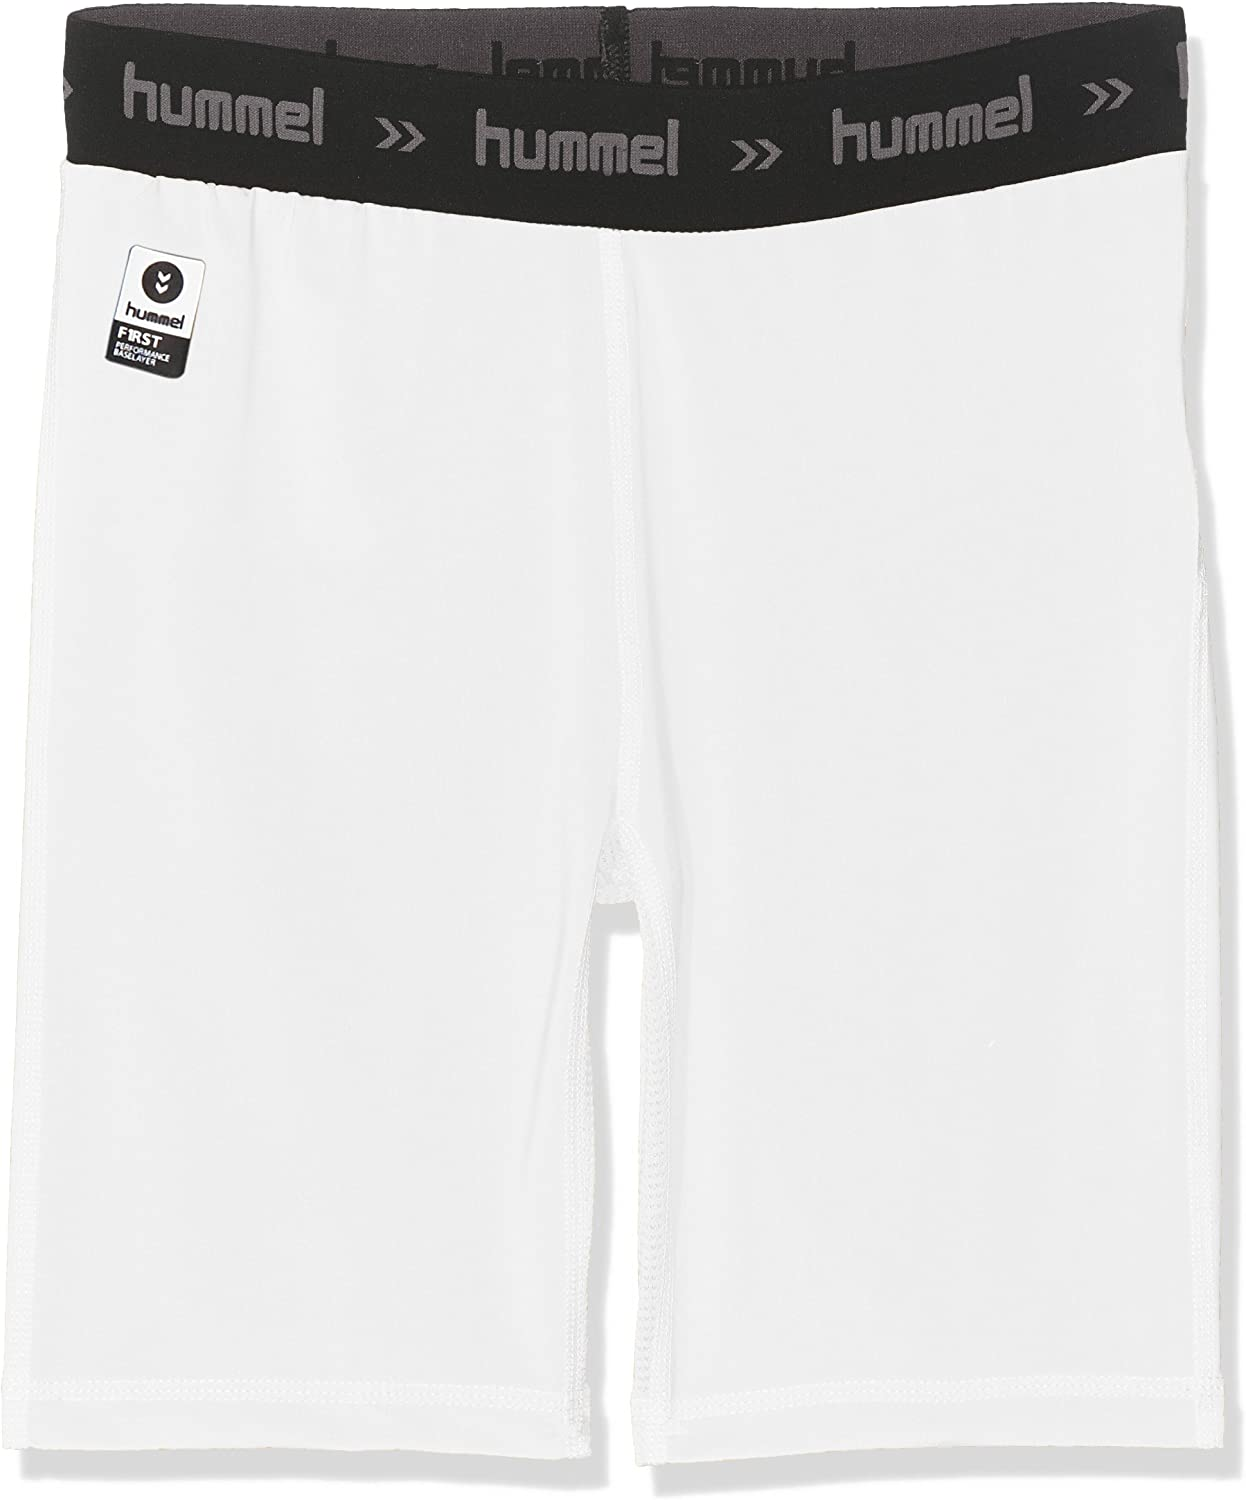 hummel Kinder First Perf Short Tights Leggings